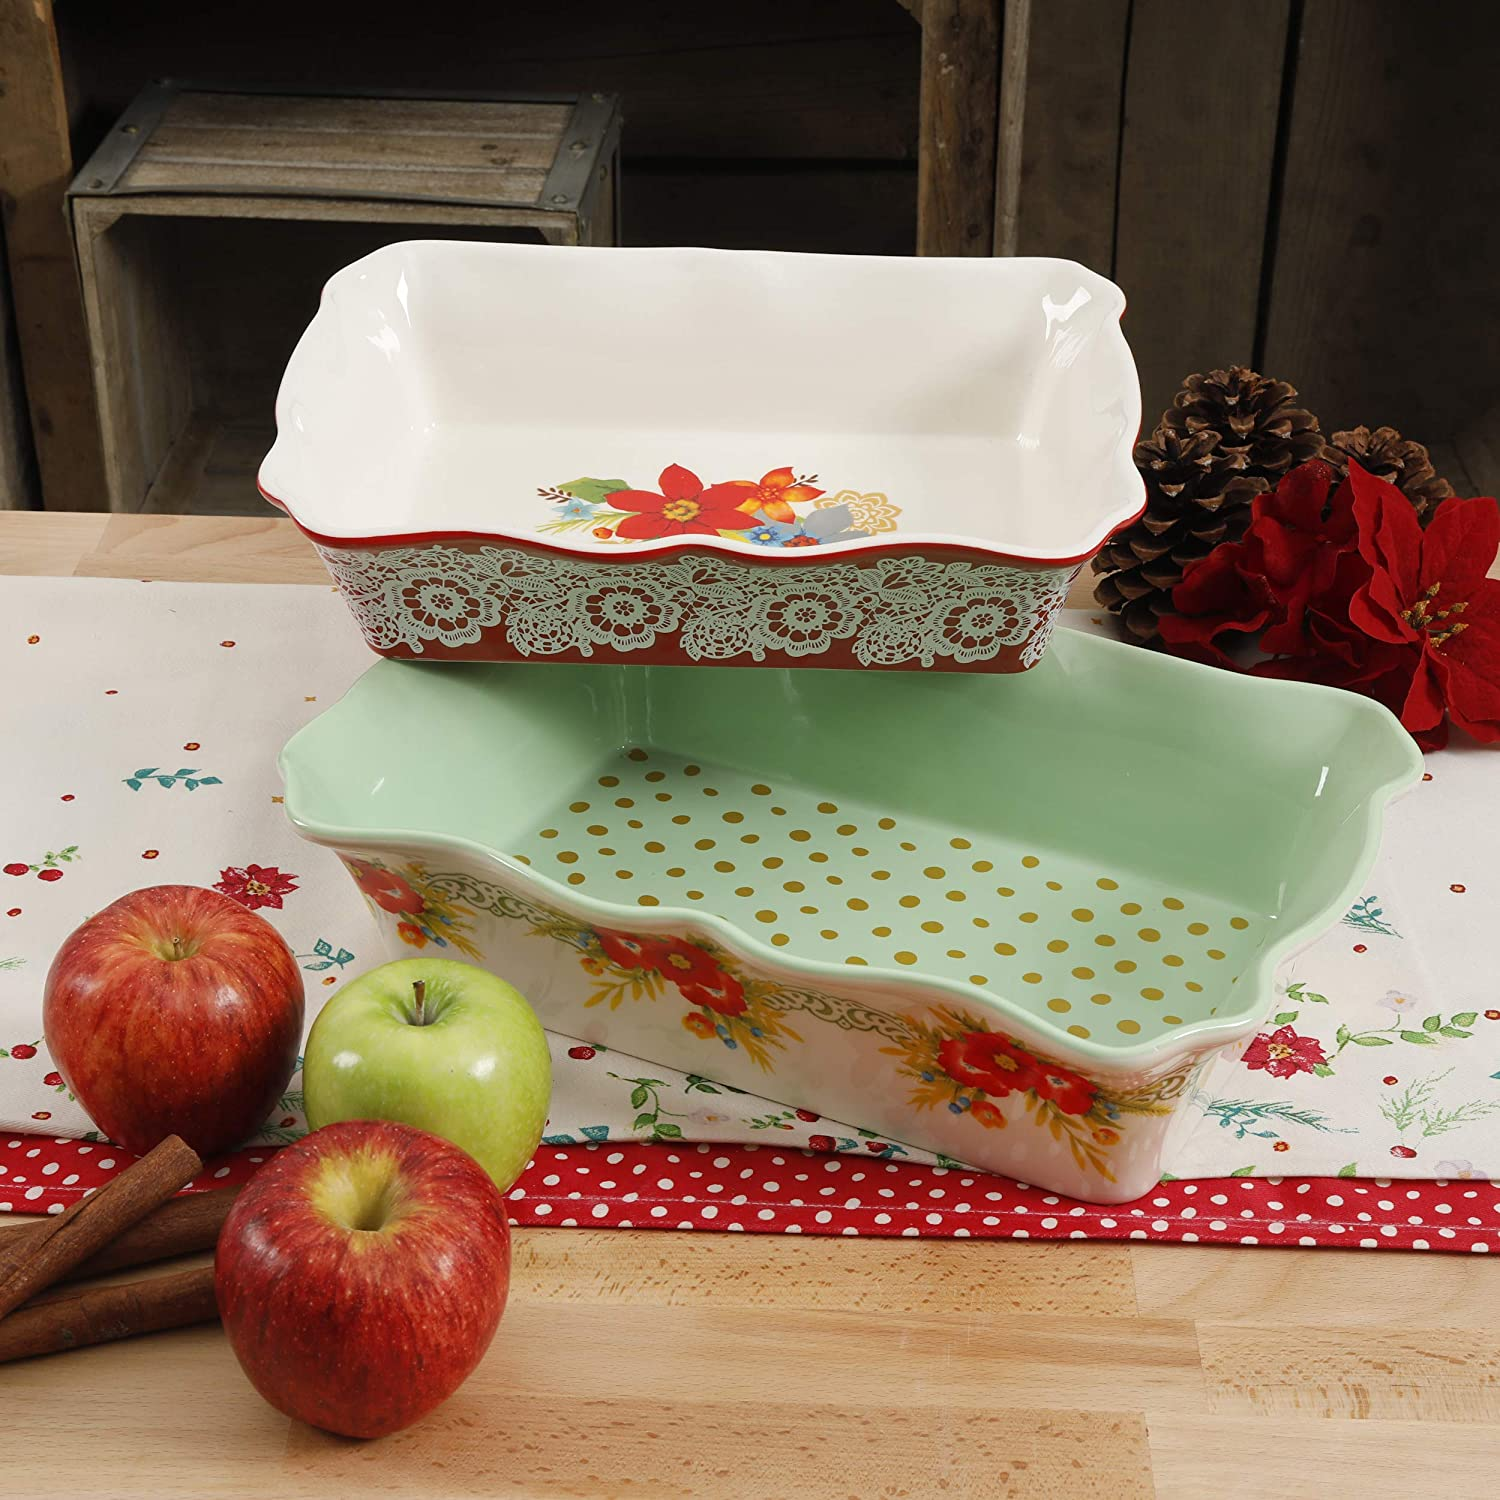 The Pioneer Woman 2 piece Ceramic Bakeware in Garland Gibson